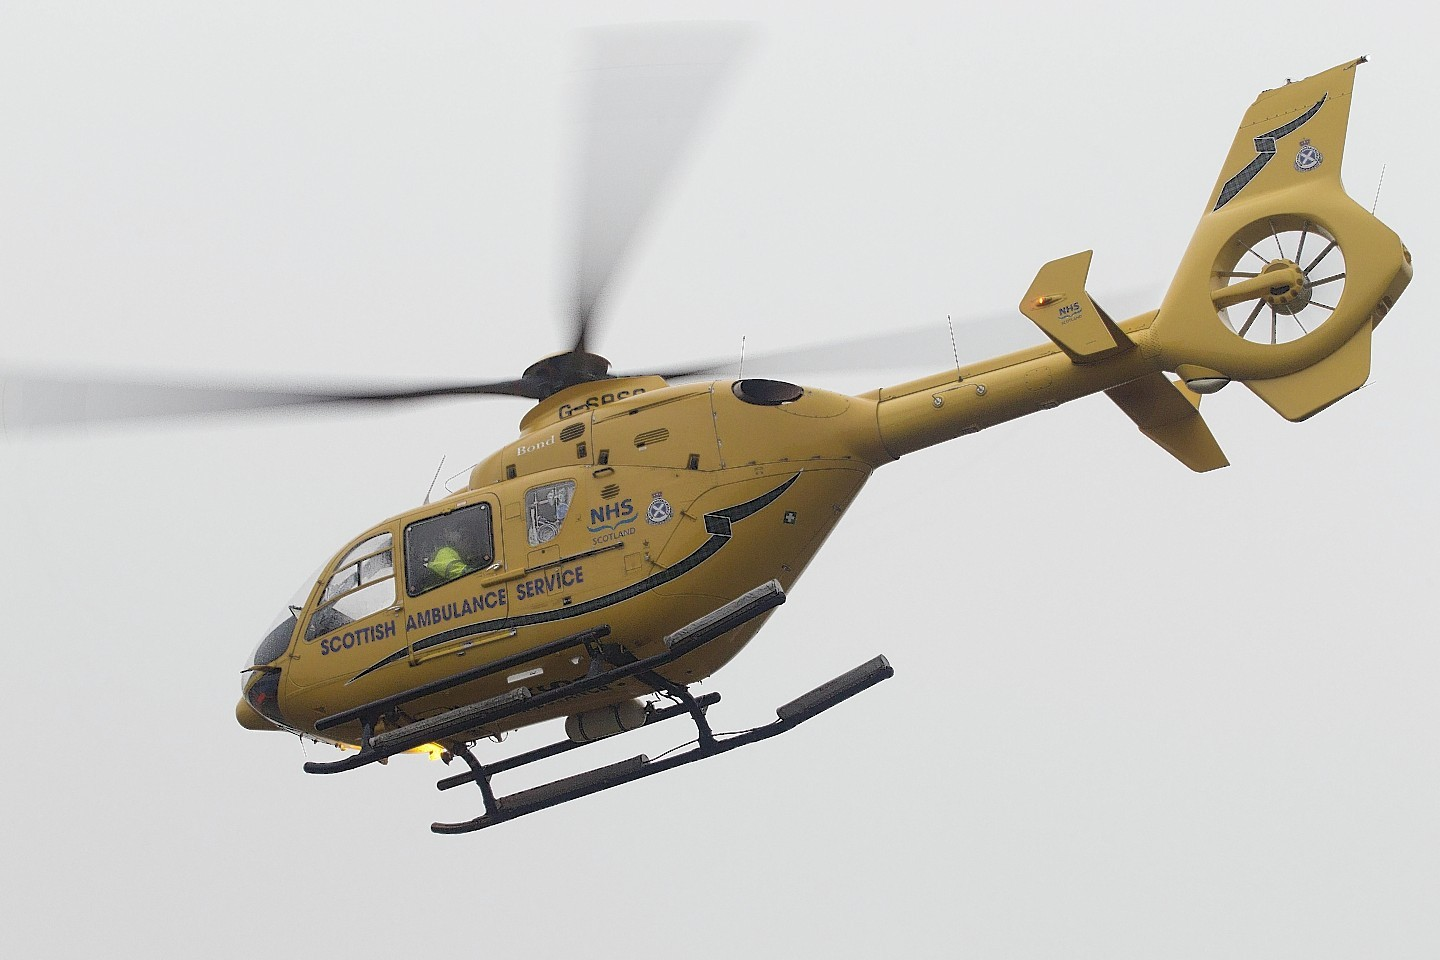 The man was taken to ARI by air ambulance